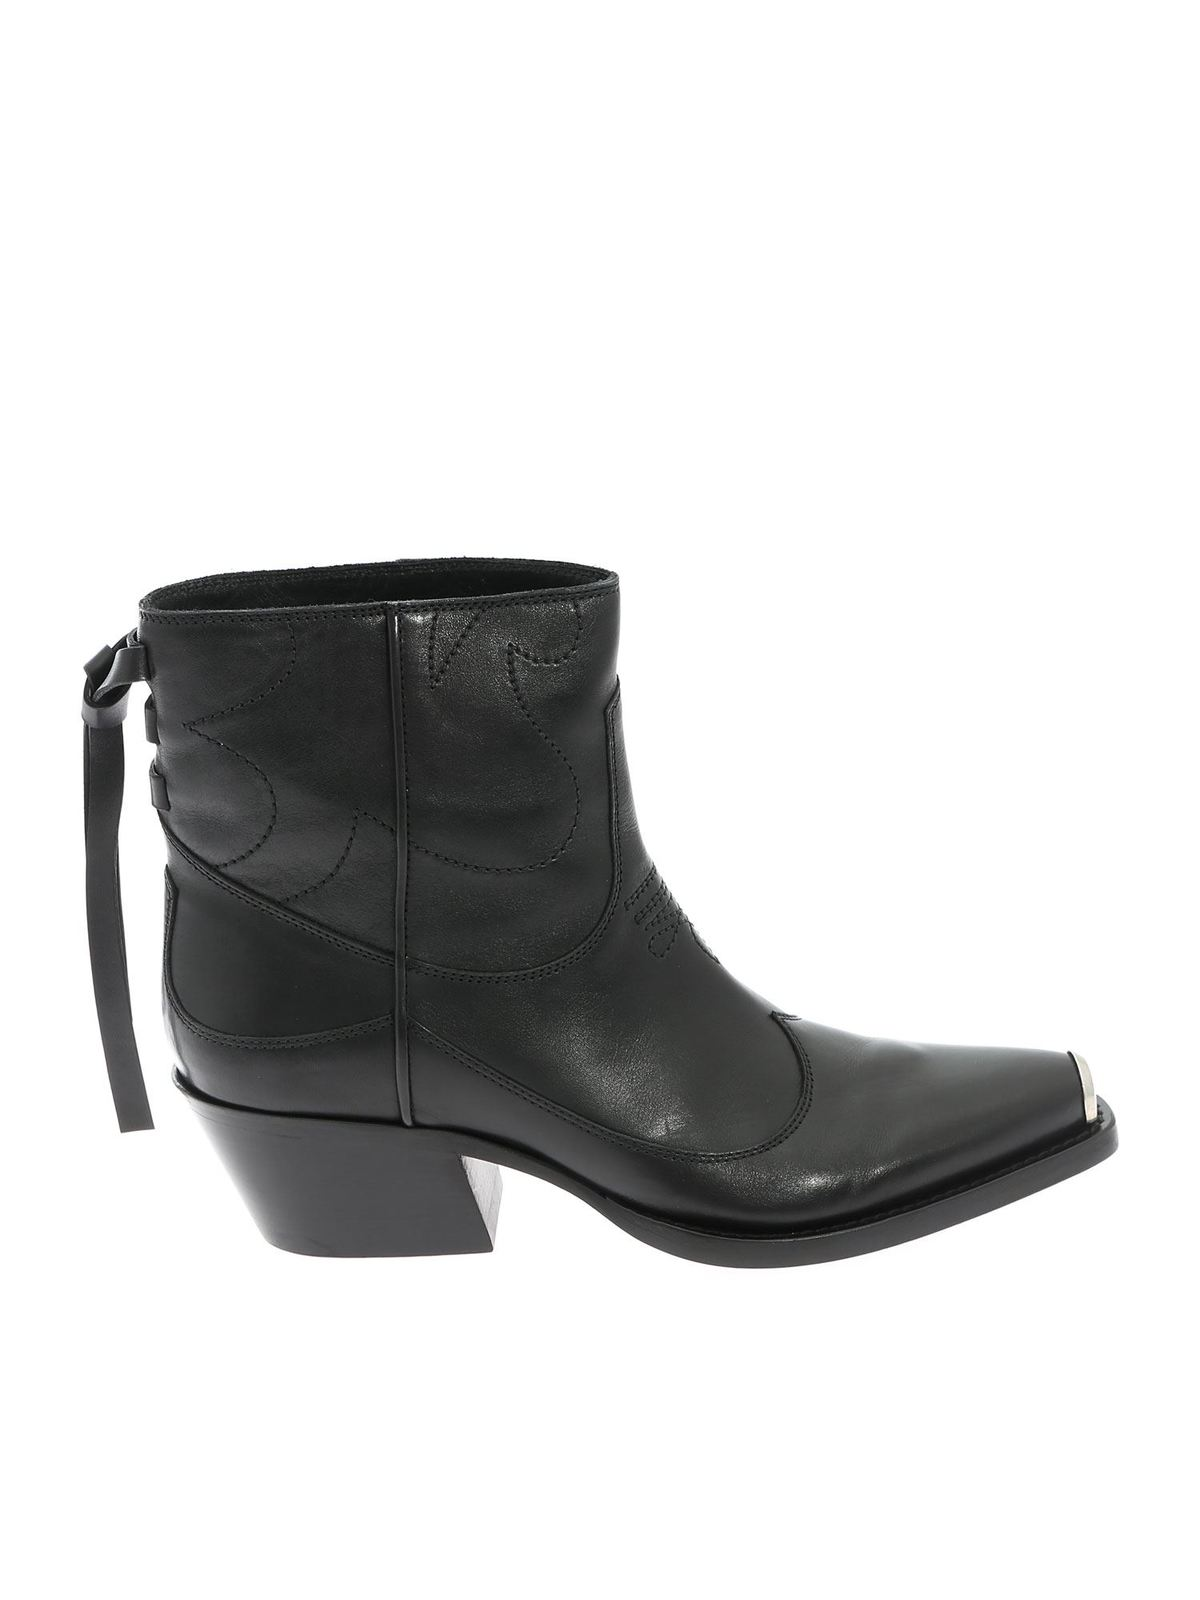 Htc TEXAN LOW ANKLE BOOT IN BLACK